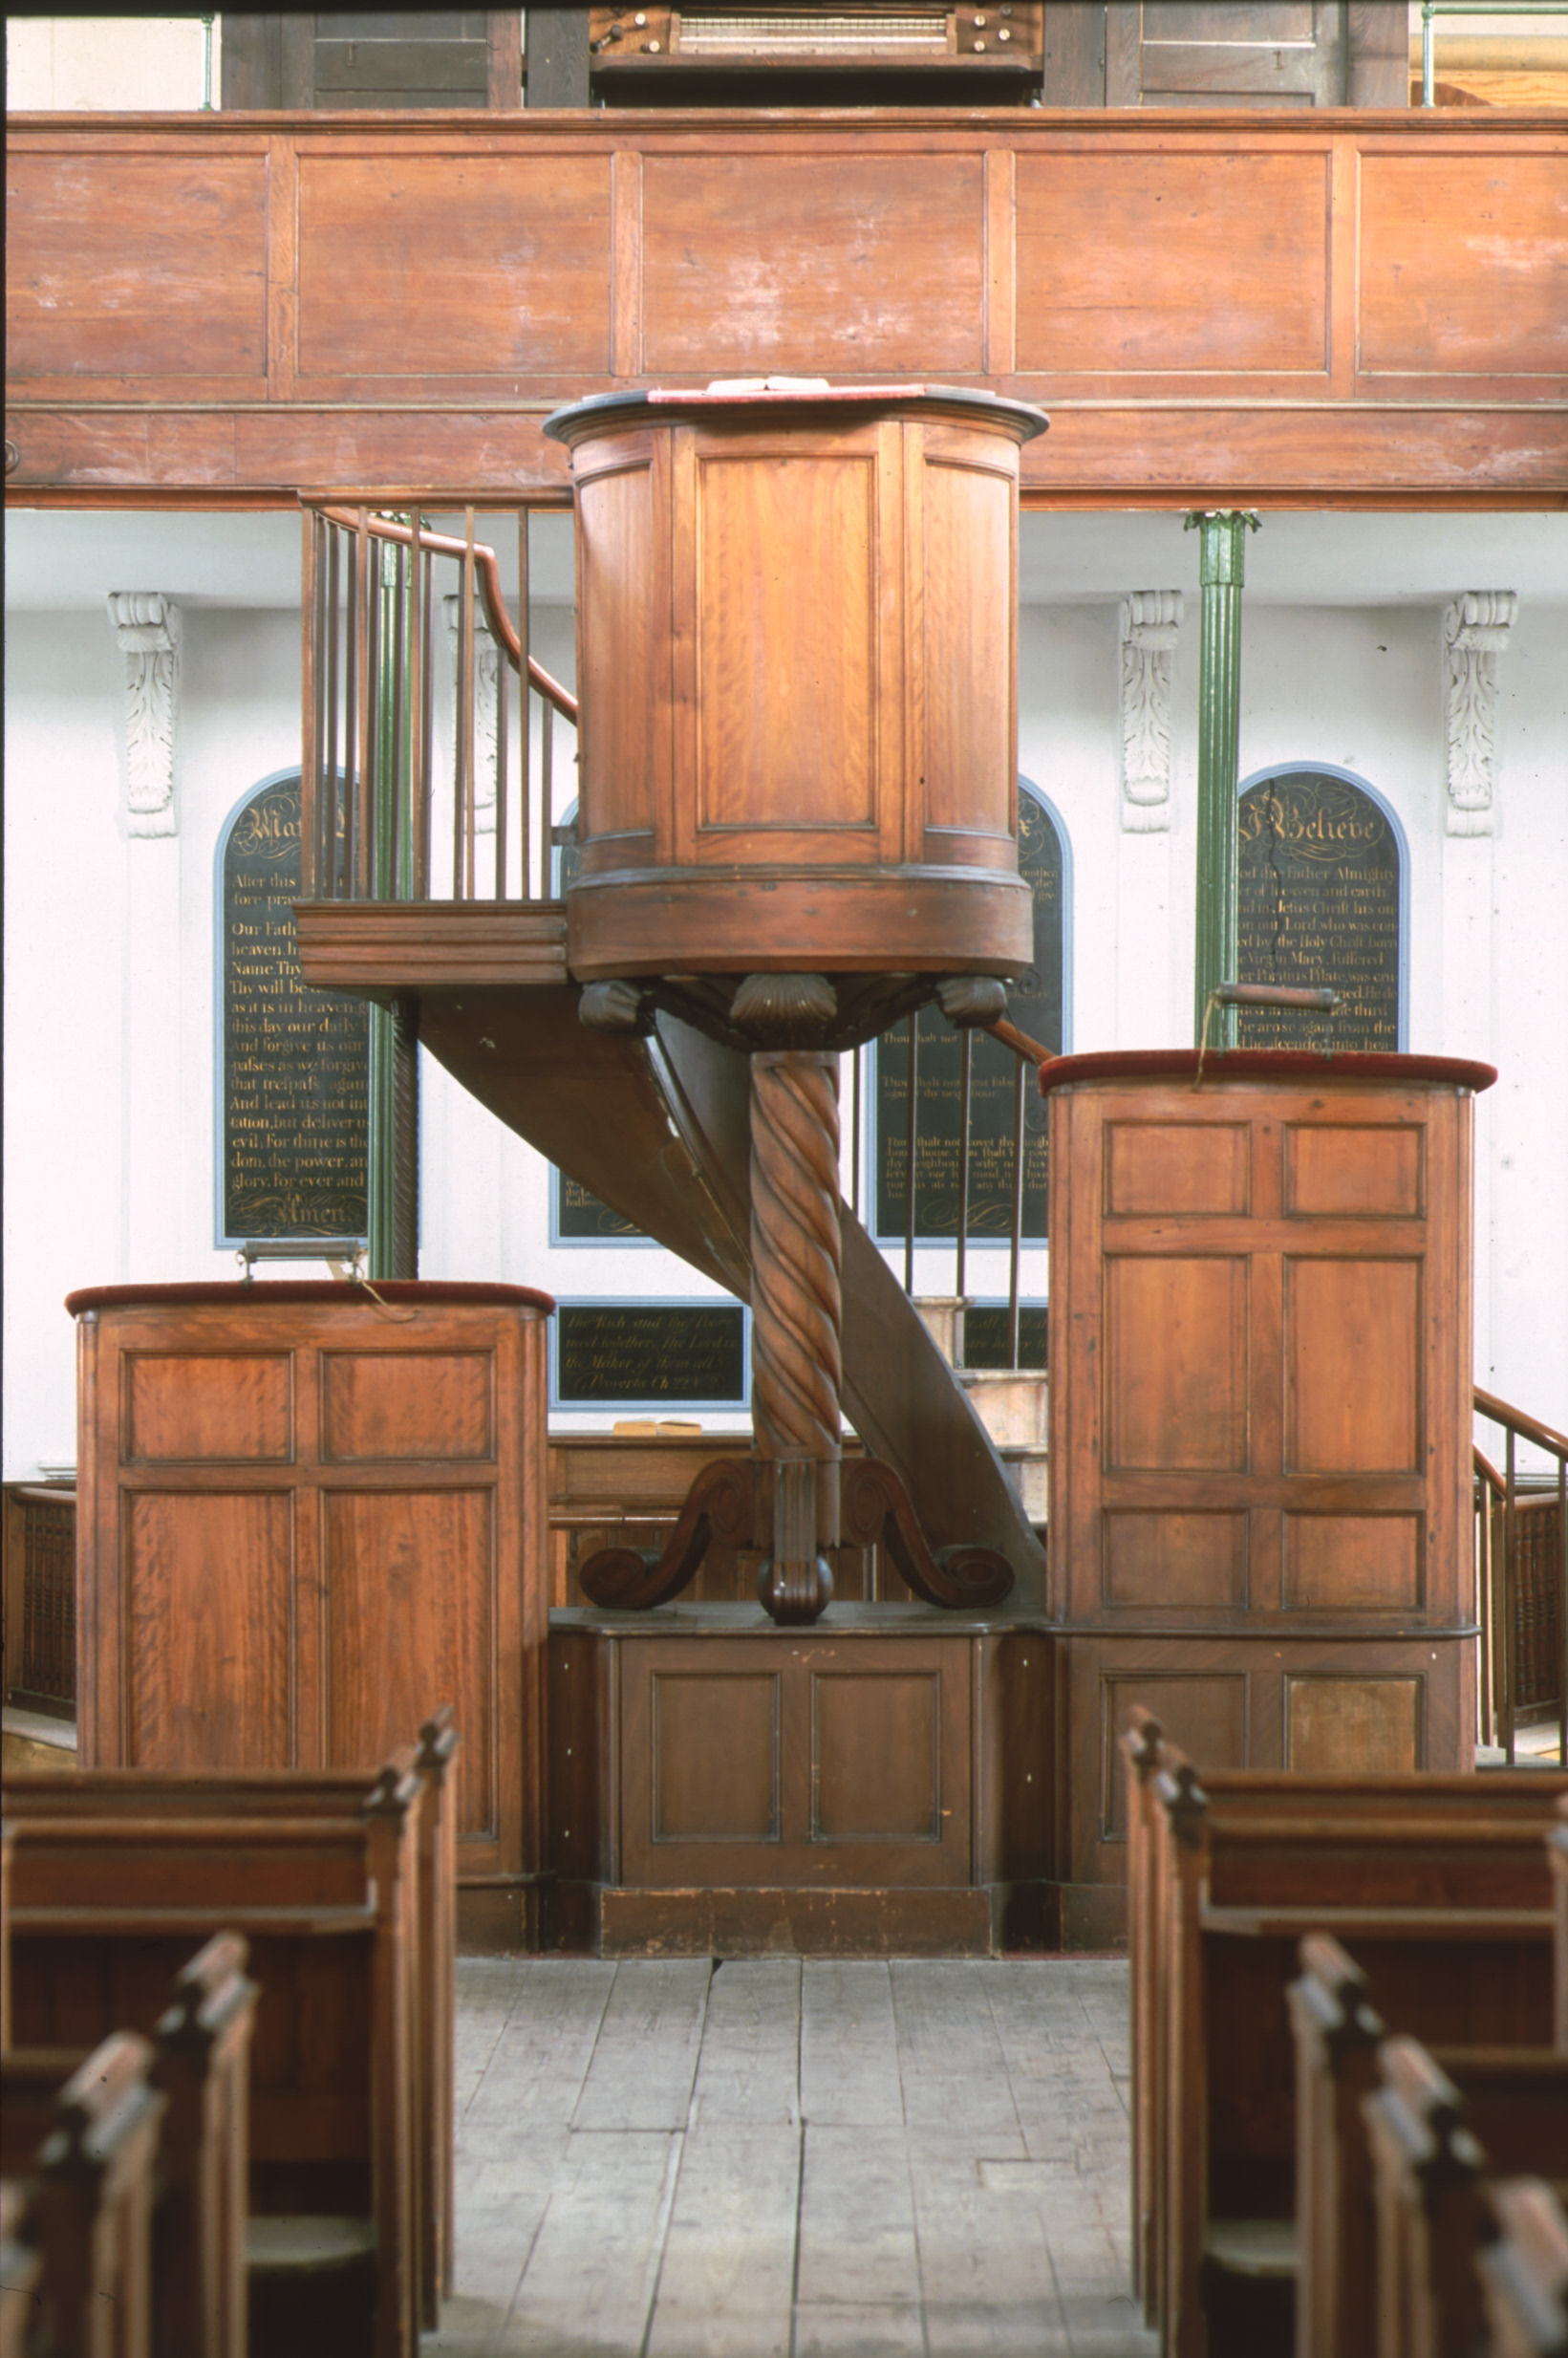 9. Stand in a triple decker pulpit